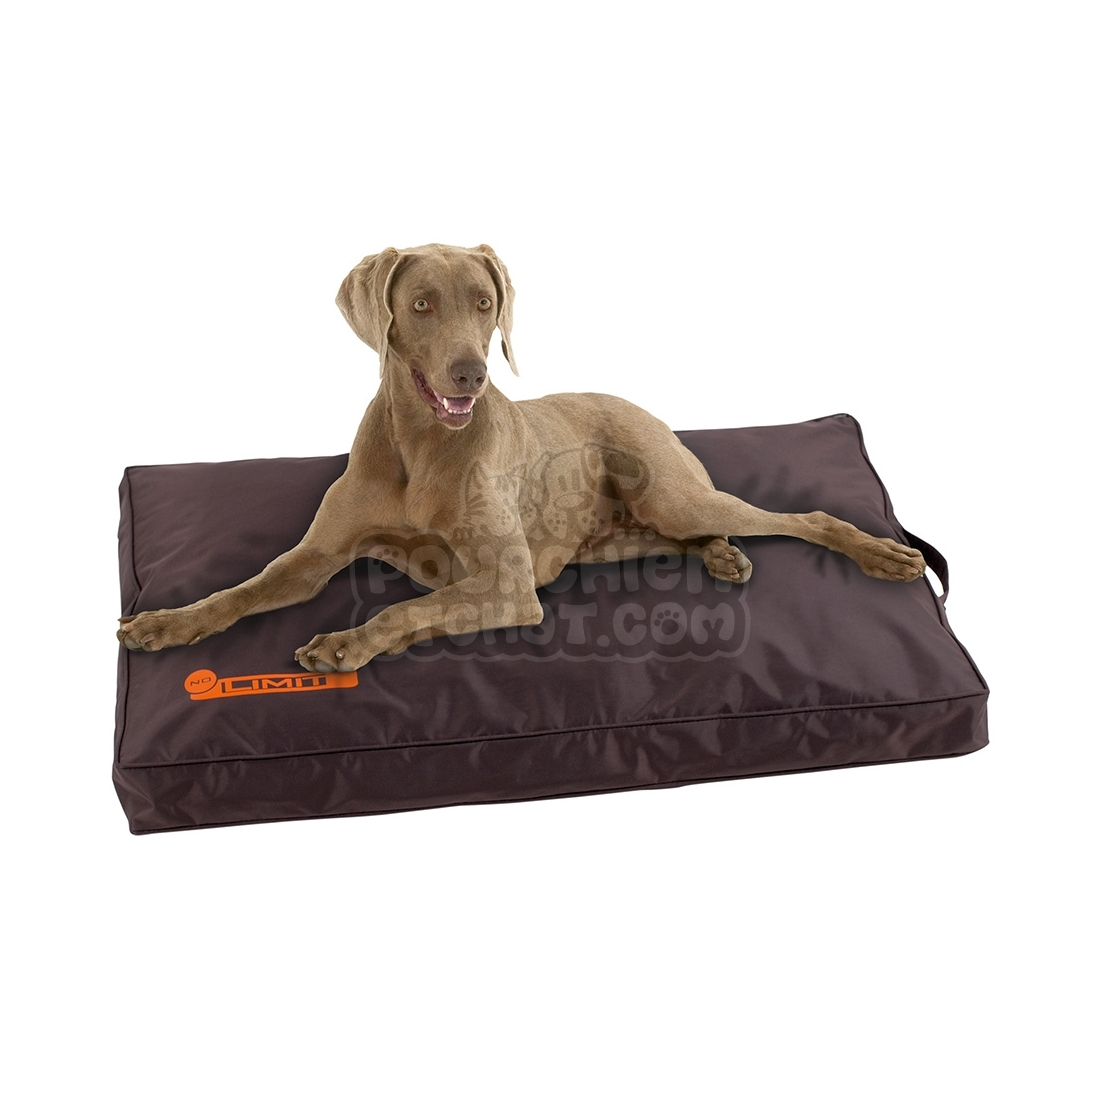 coussin pour chien no limit marron. Black Bedroom Furniture Sets. Home Design Ideas